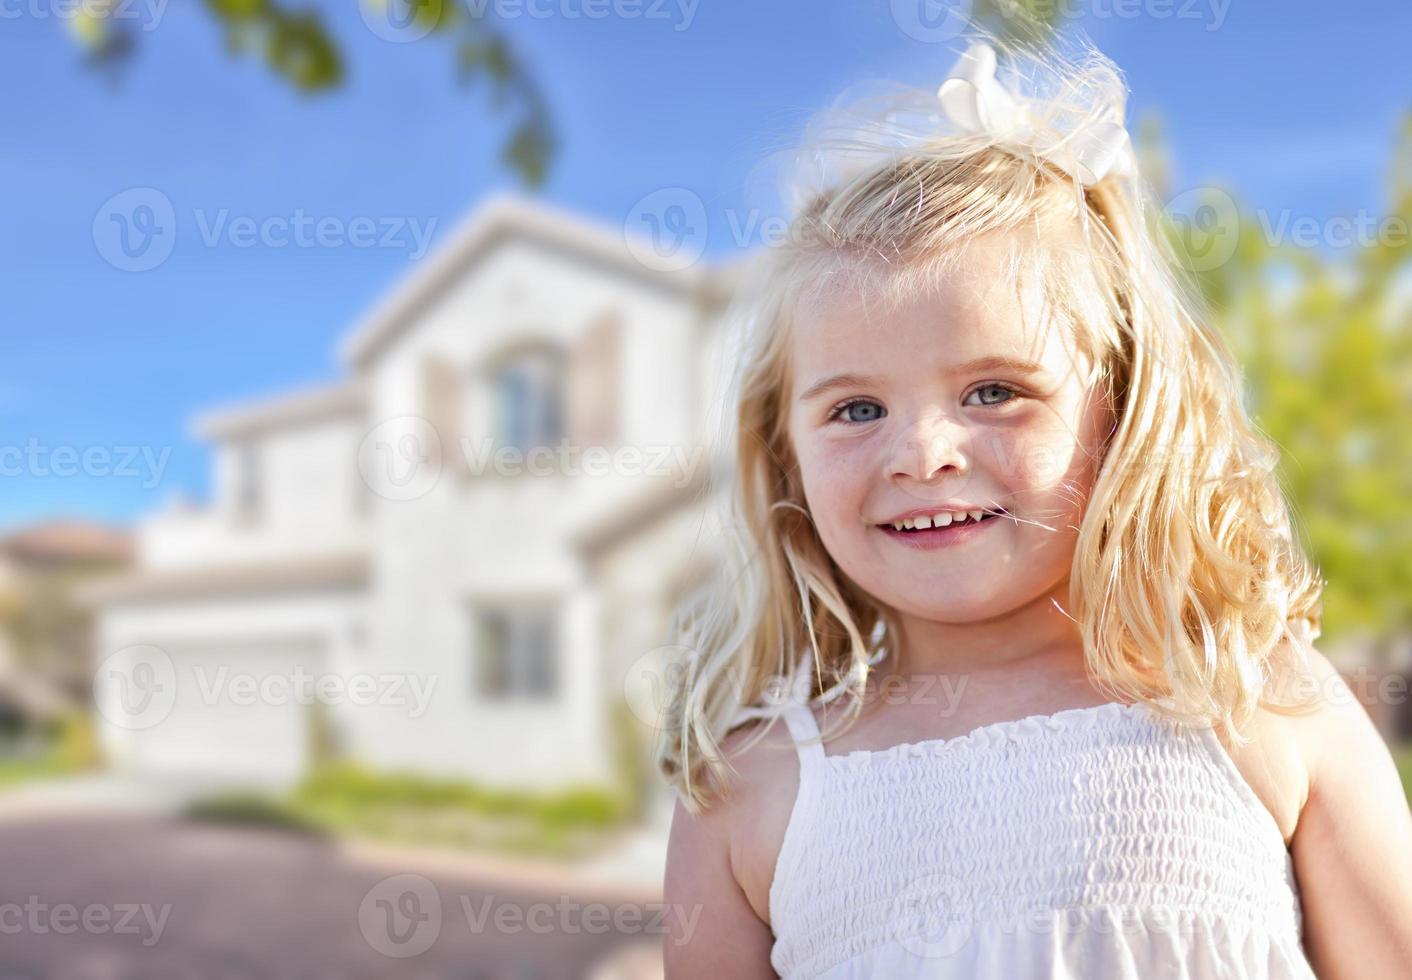 Cute Smiling Girl Playing in Front Yard photo